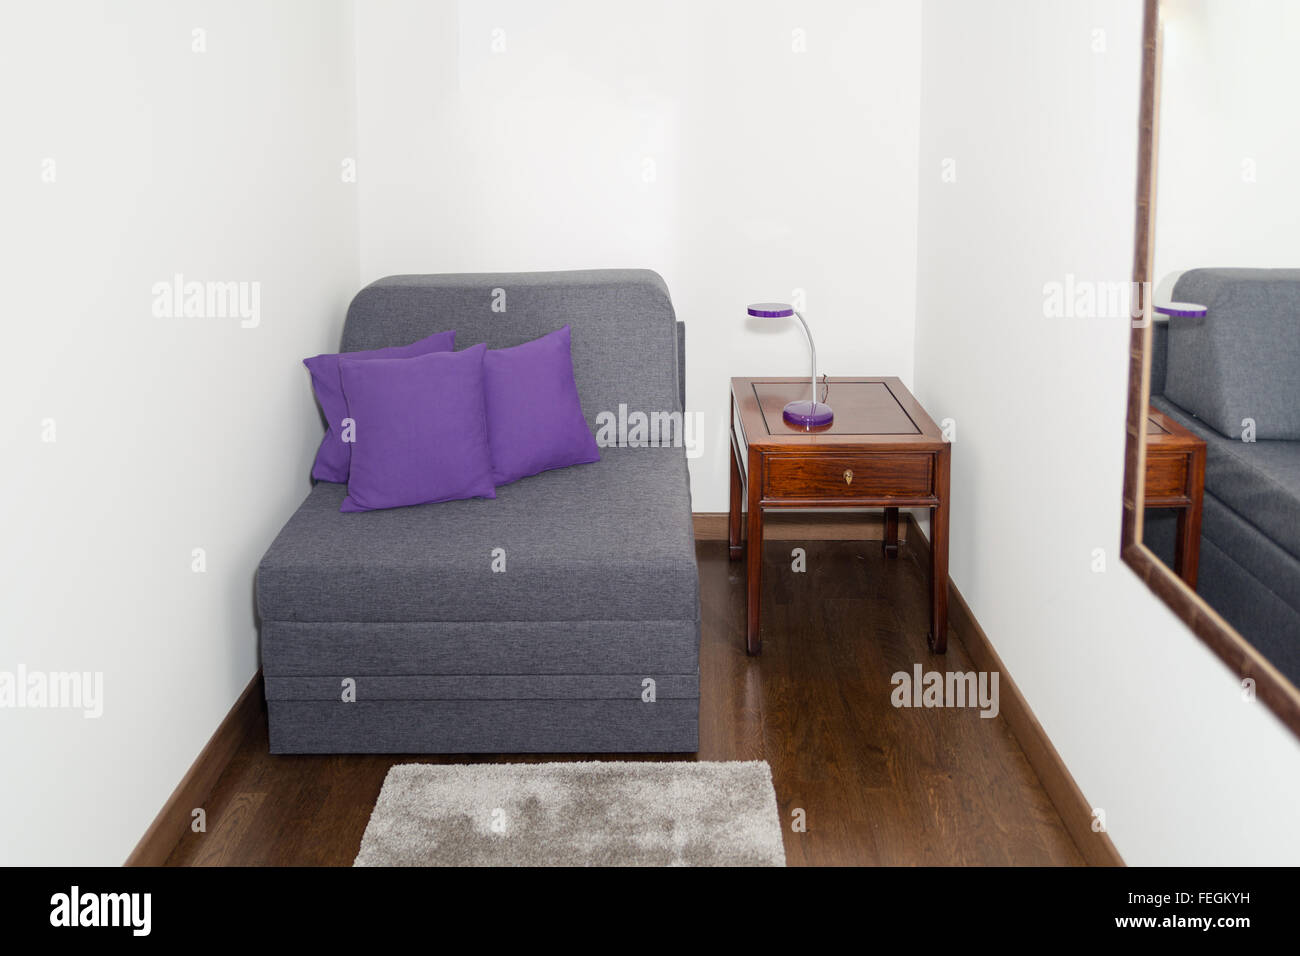 Comfy Gray Armchair with Purple Pillow near a Small Table with Modern Night Lamp. Armchair in a Small Room for Guests - Stock Image